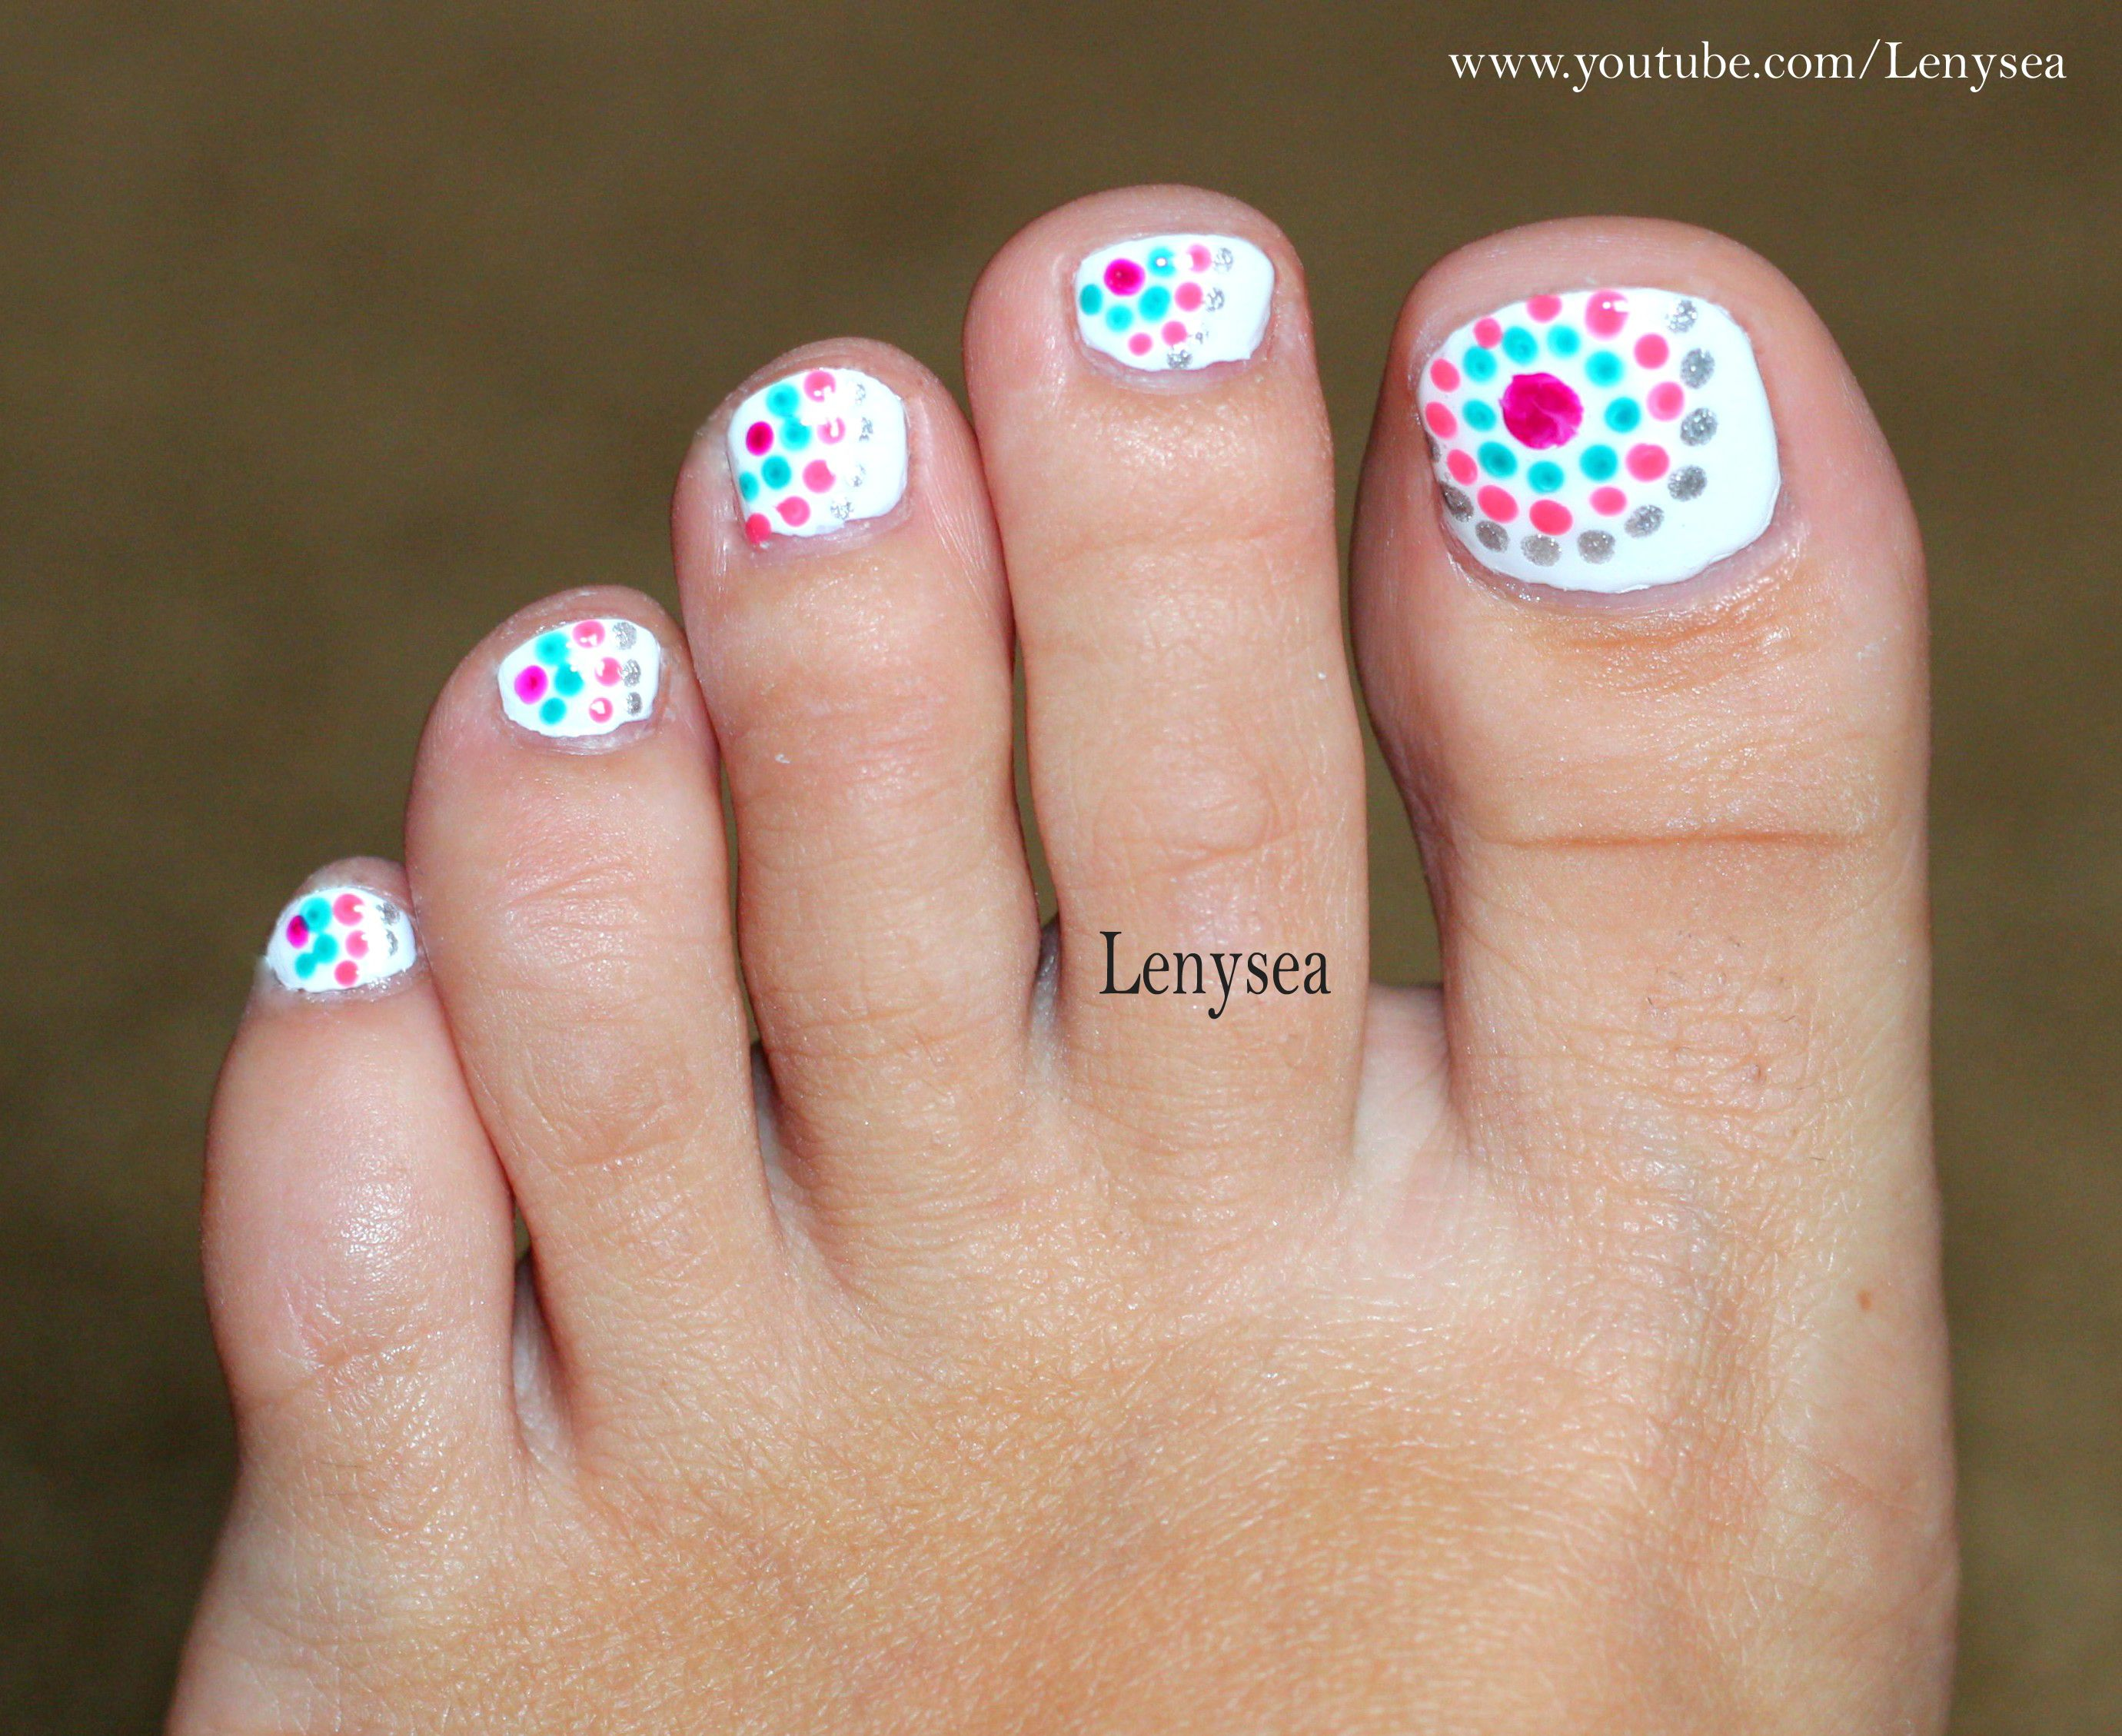 Cute And Easy Toe Nail Design For Summer Christina Childress Childress Childress Childress Childress Simple Toe Nails Cute Toe Nails Easy Toe Nail Designs